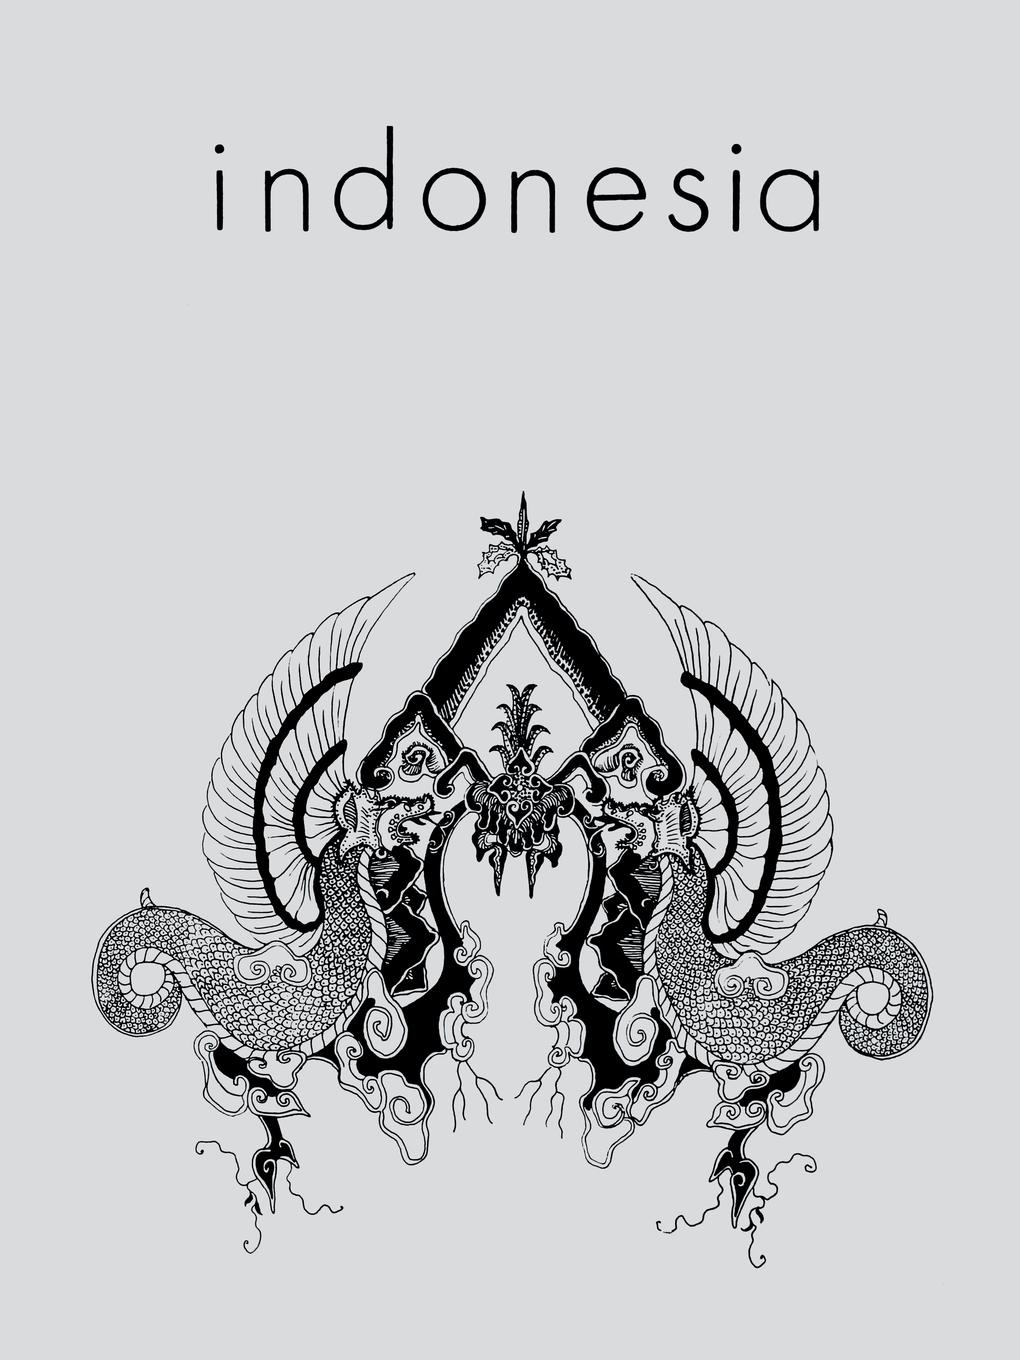 Indonesia Journal. July 1991 scholarly program notes